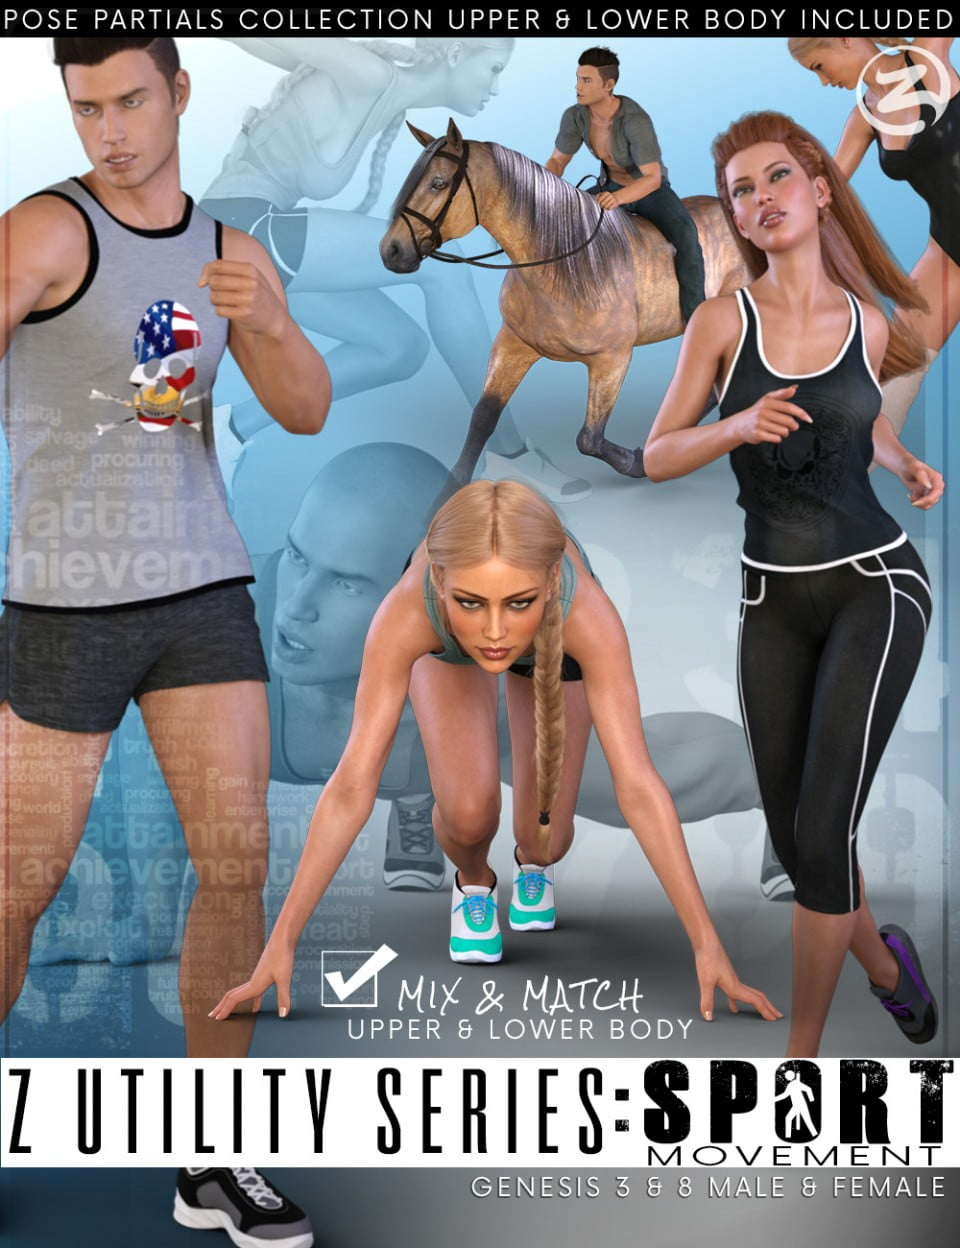 Z Utility Series Sport : Movement - Poses and Partials for Genesis 3 and 8